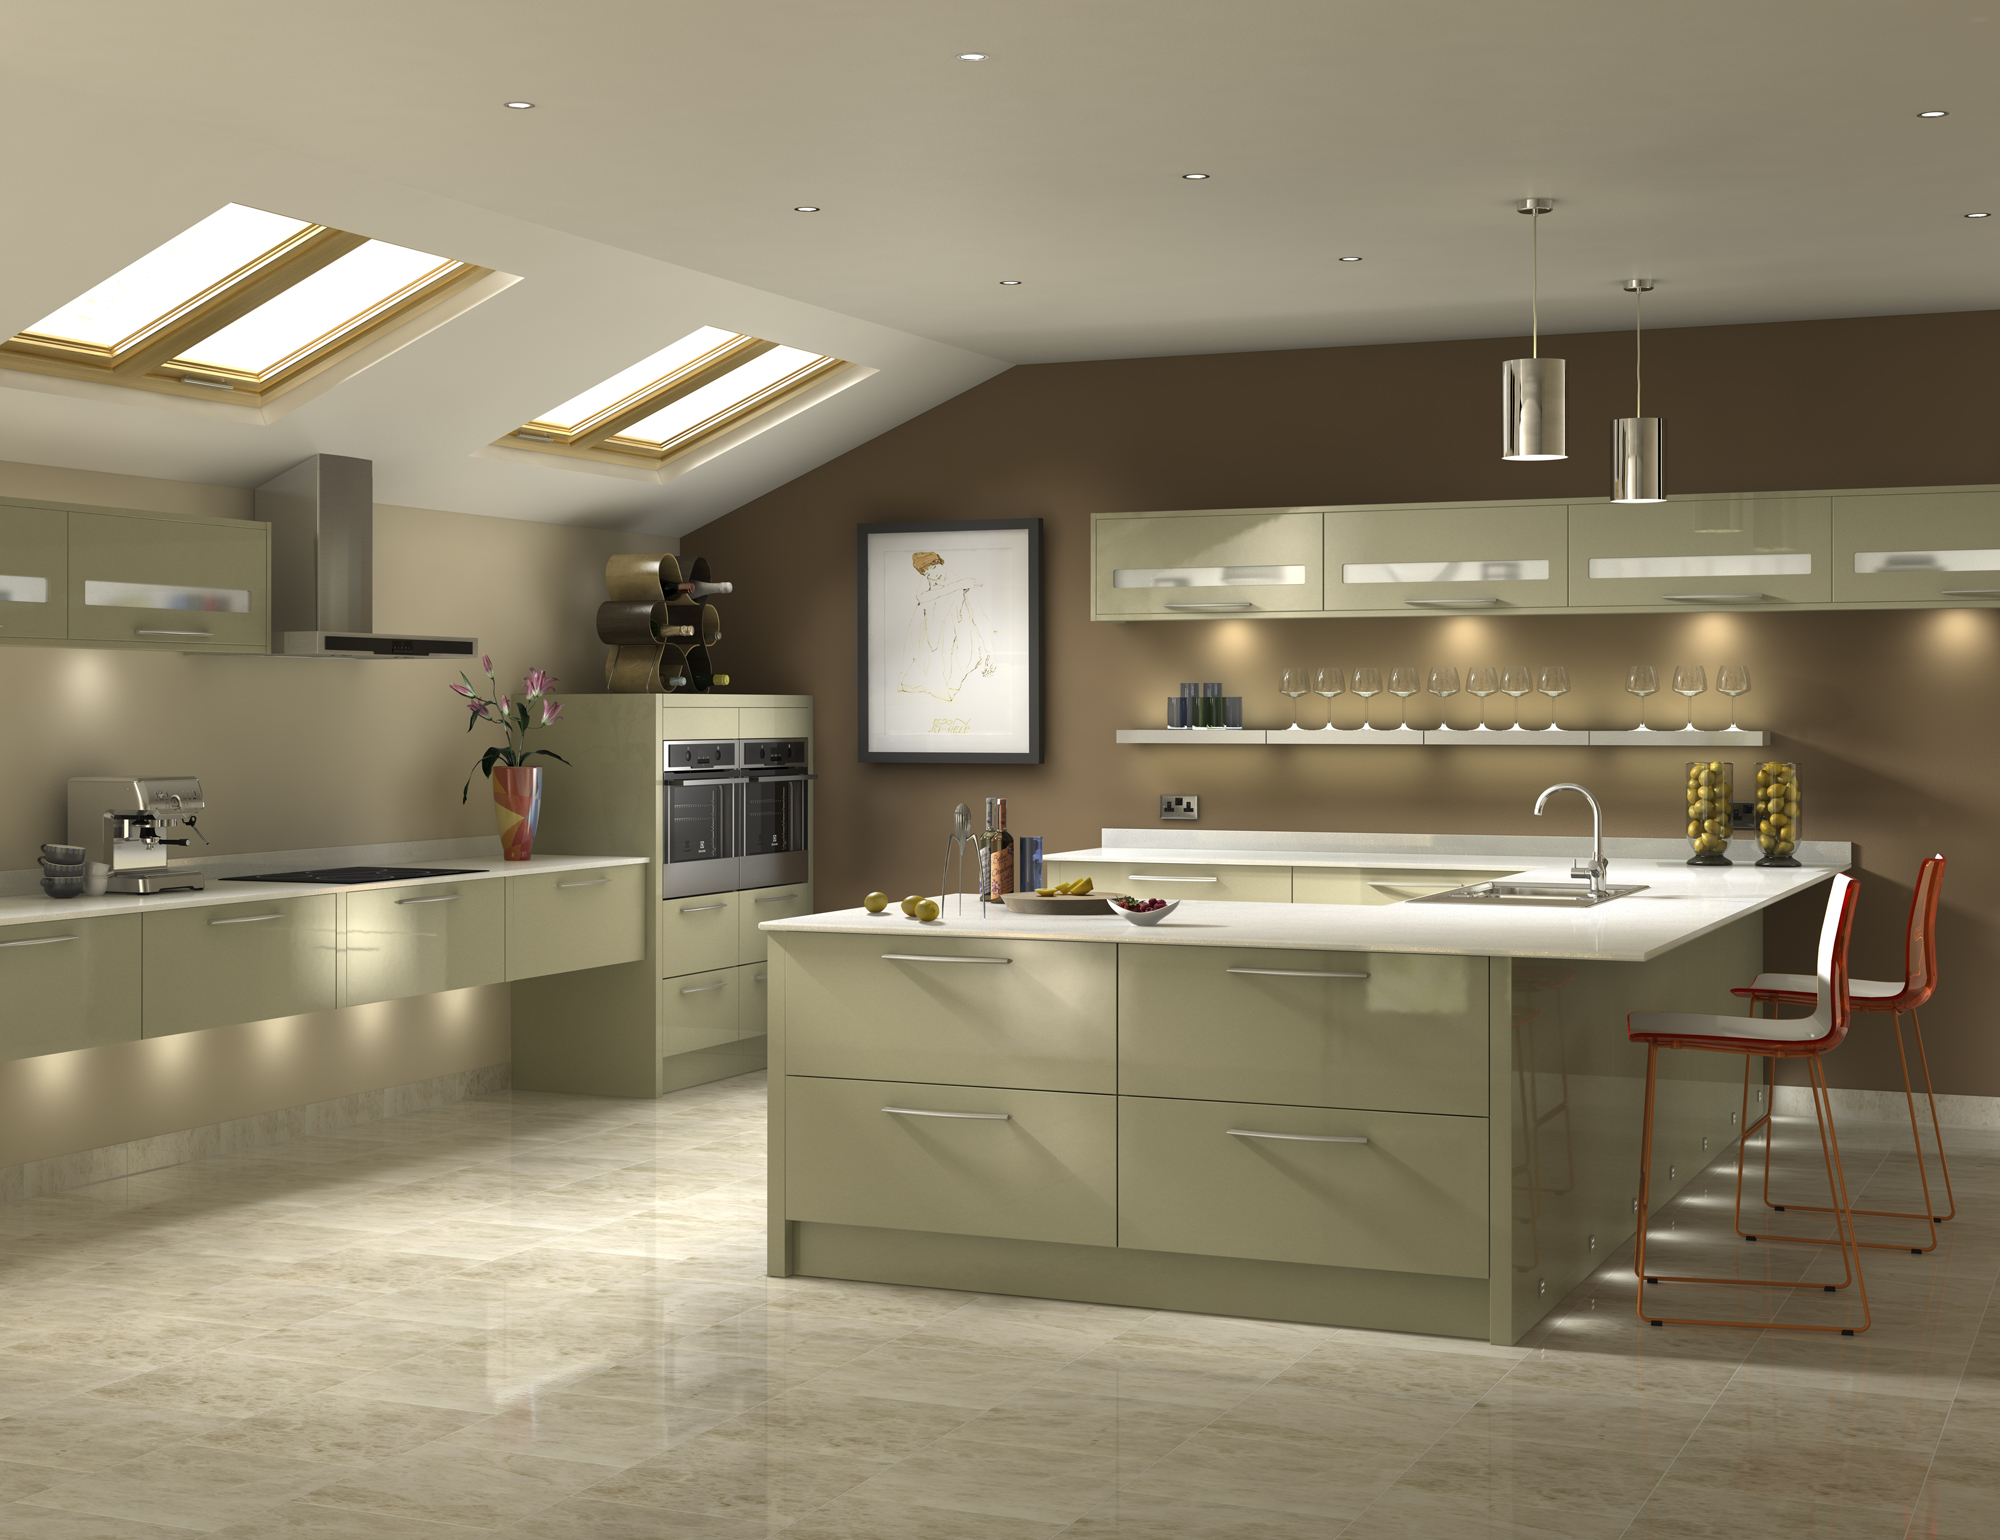 Benchmarx Unveils New 2012 Kitchen Ranges